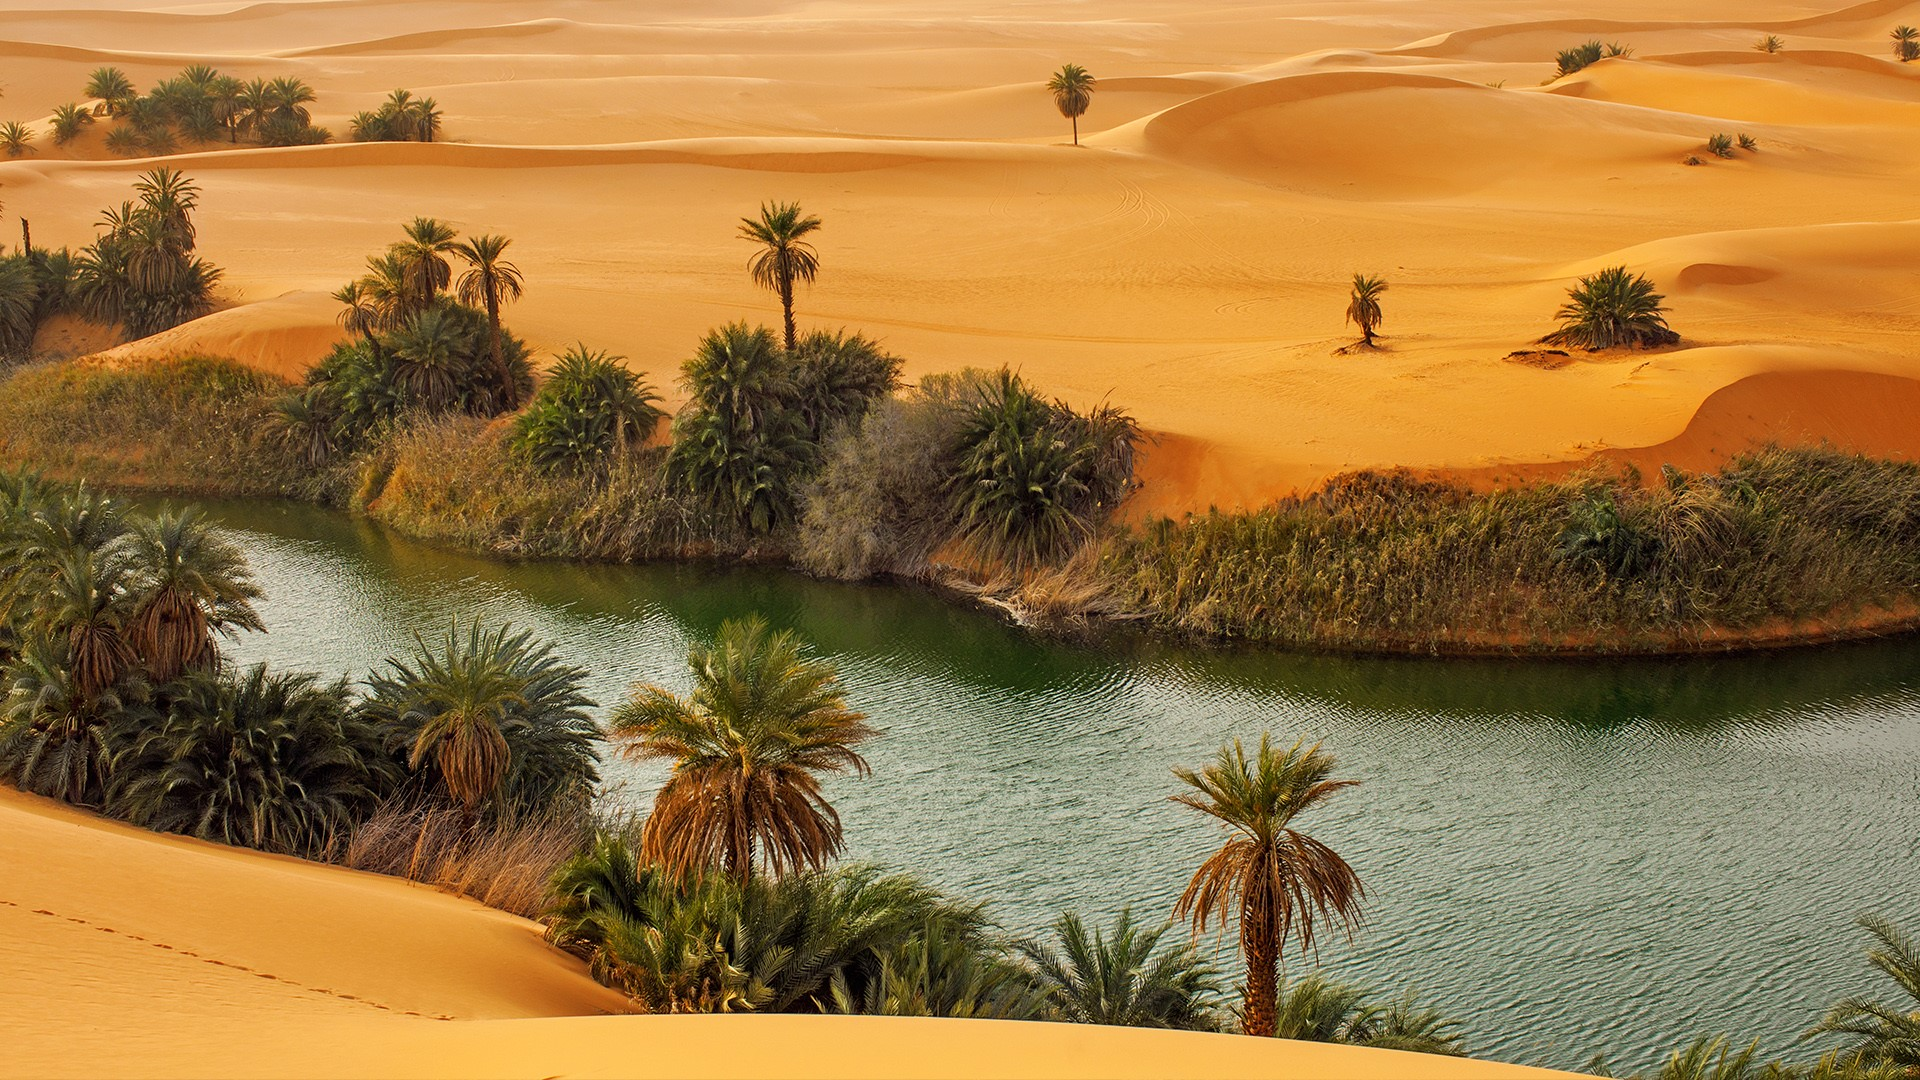 Oasis Umm Al Maa In Sahara Desert Ubari Lakes Libya Windows 10